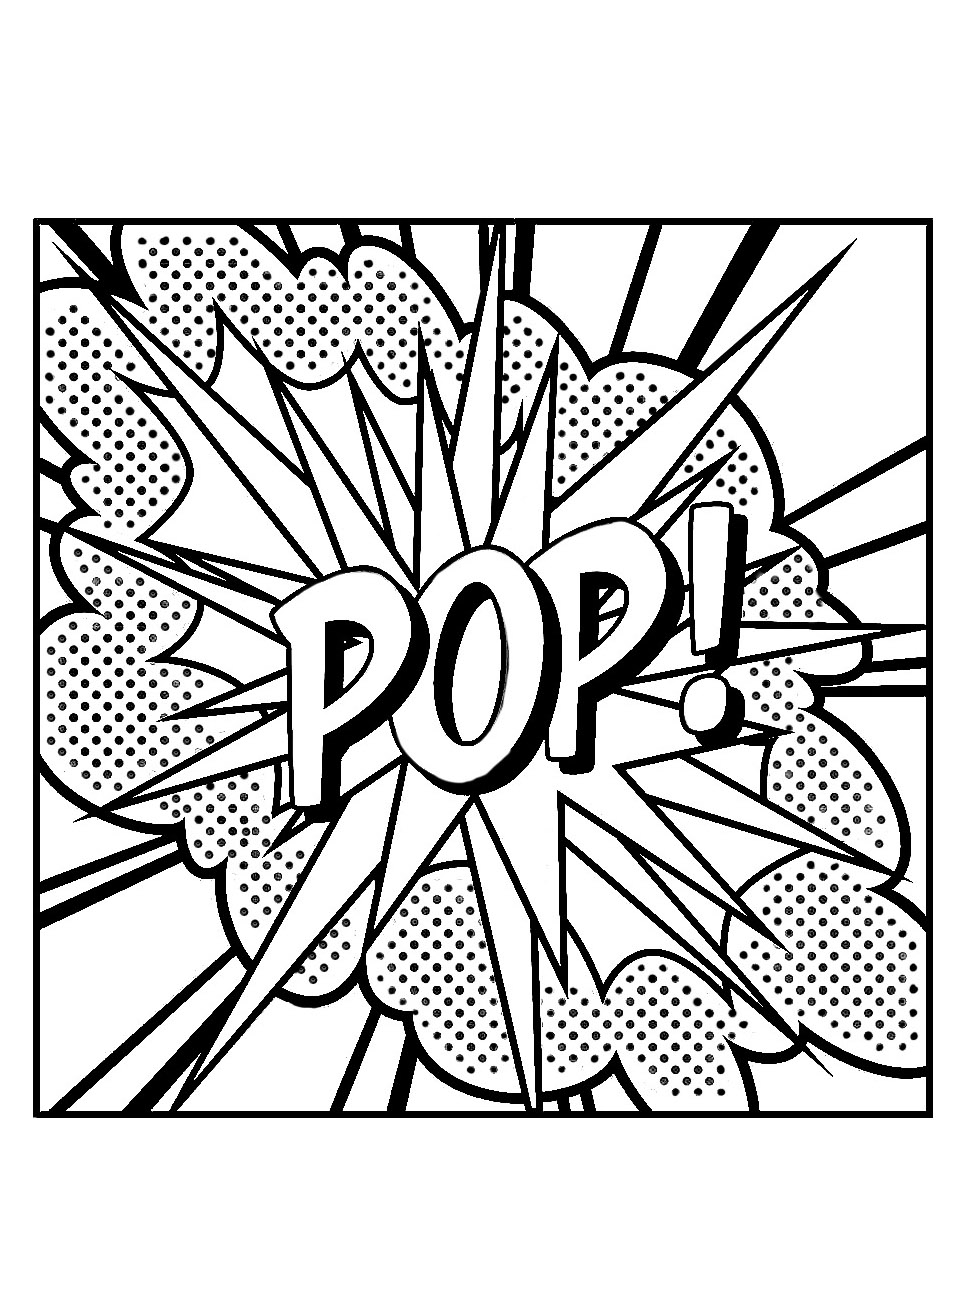 Coloring page adult pop roy lichtenstein